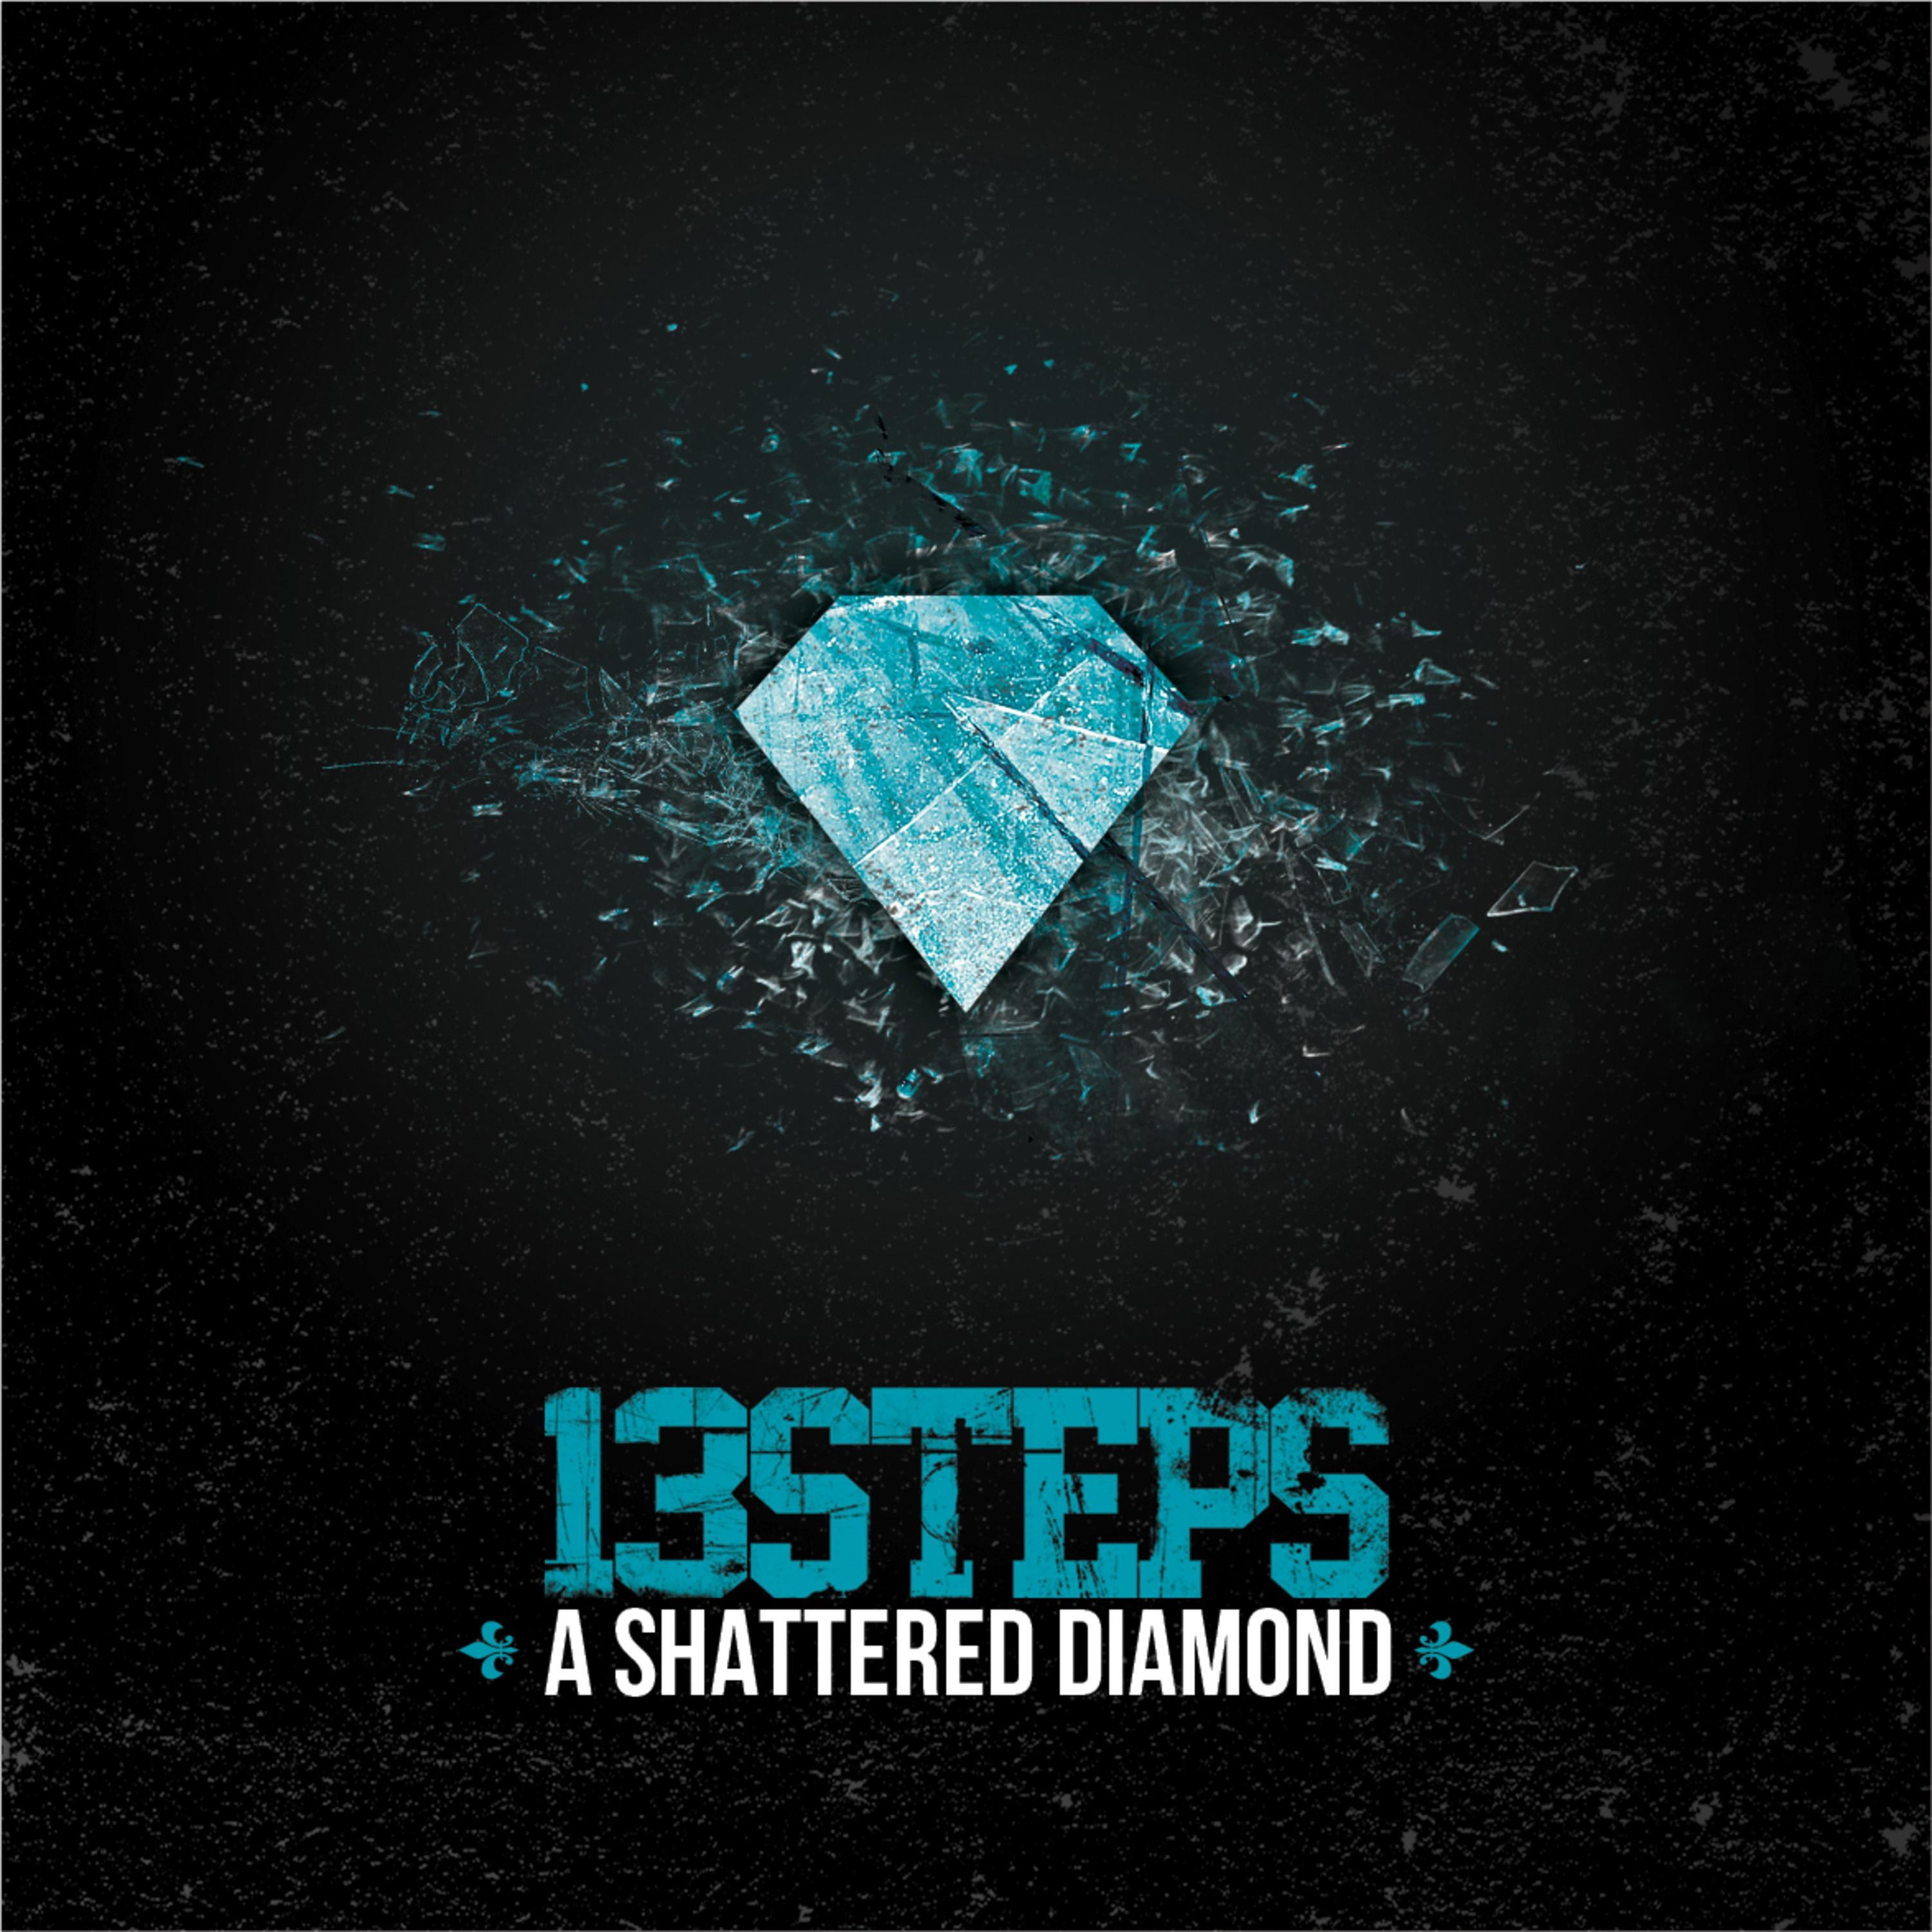 Diamonds songtext